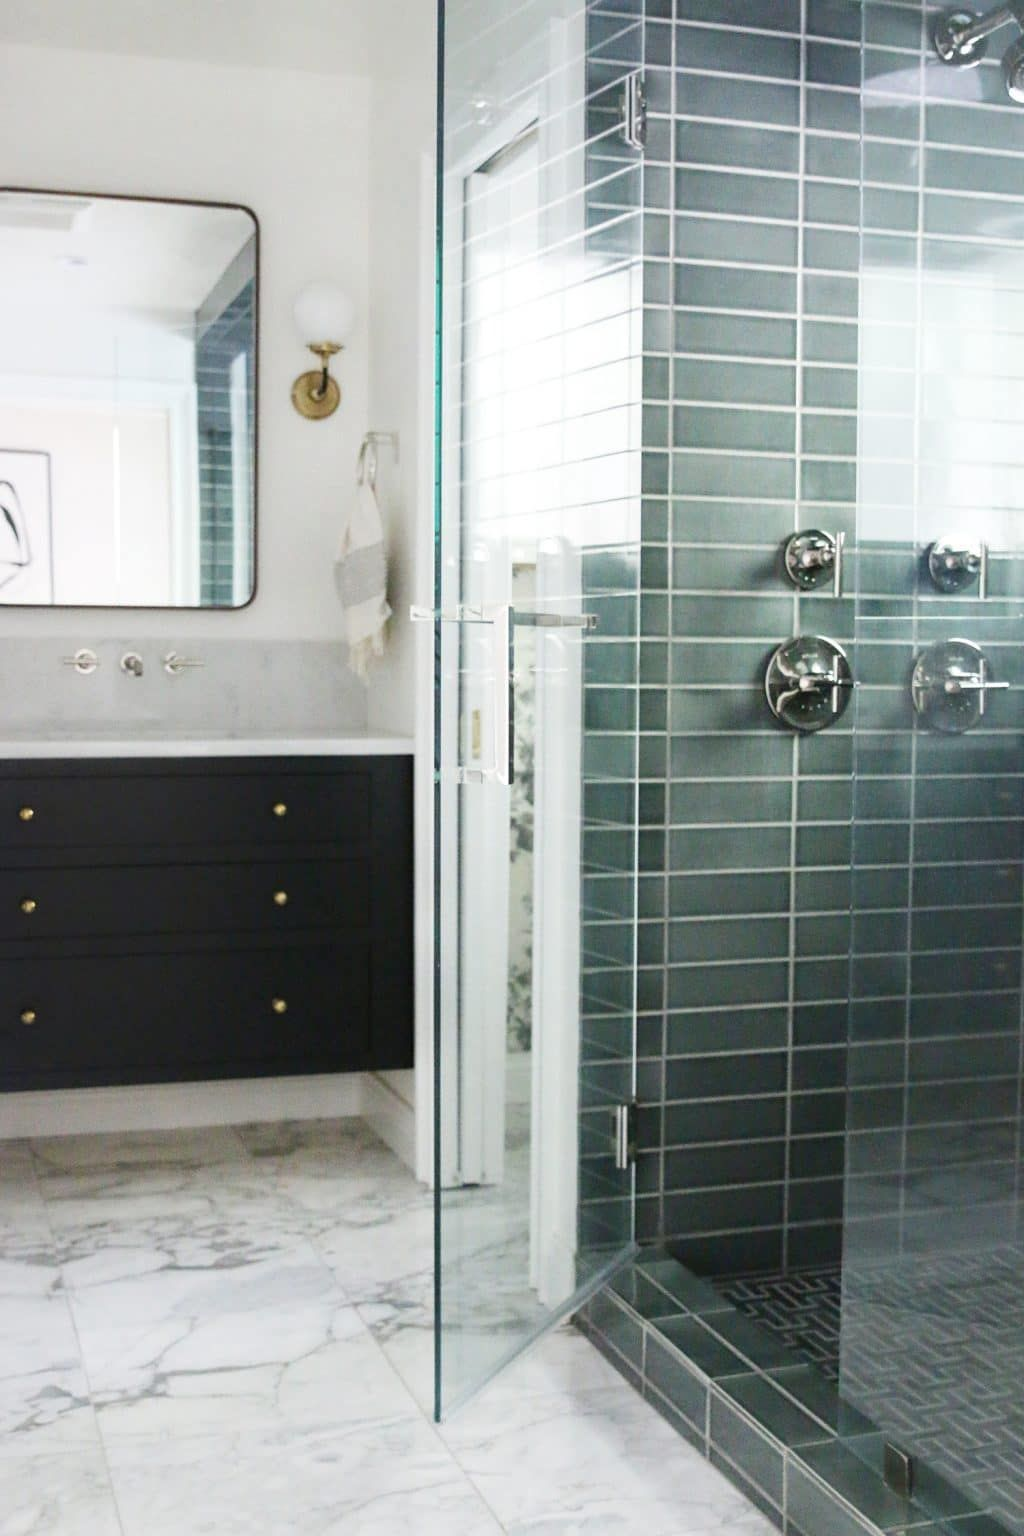 how much did the bathroom renovation cost a full budget breakdown rh pinterest com